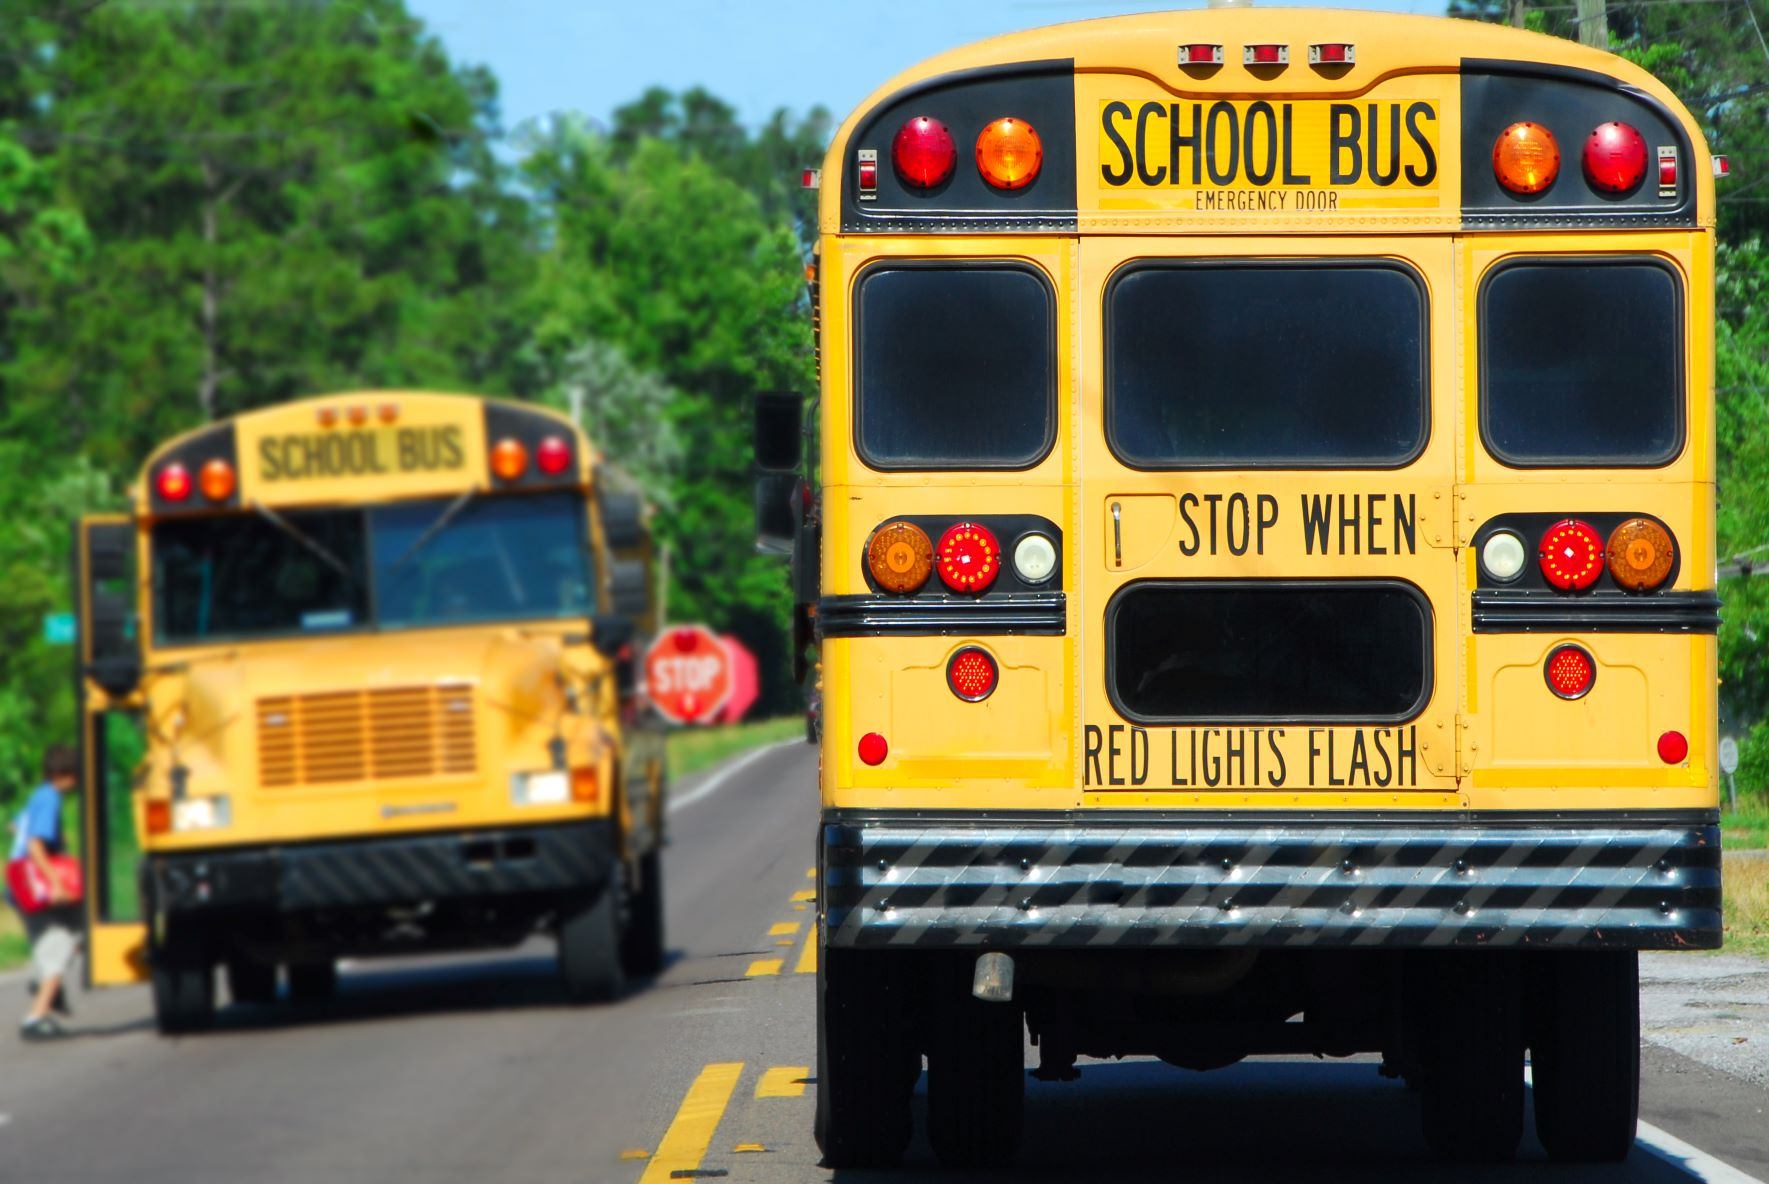 School Bus Stopped